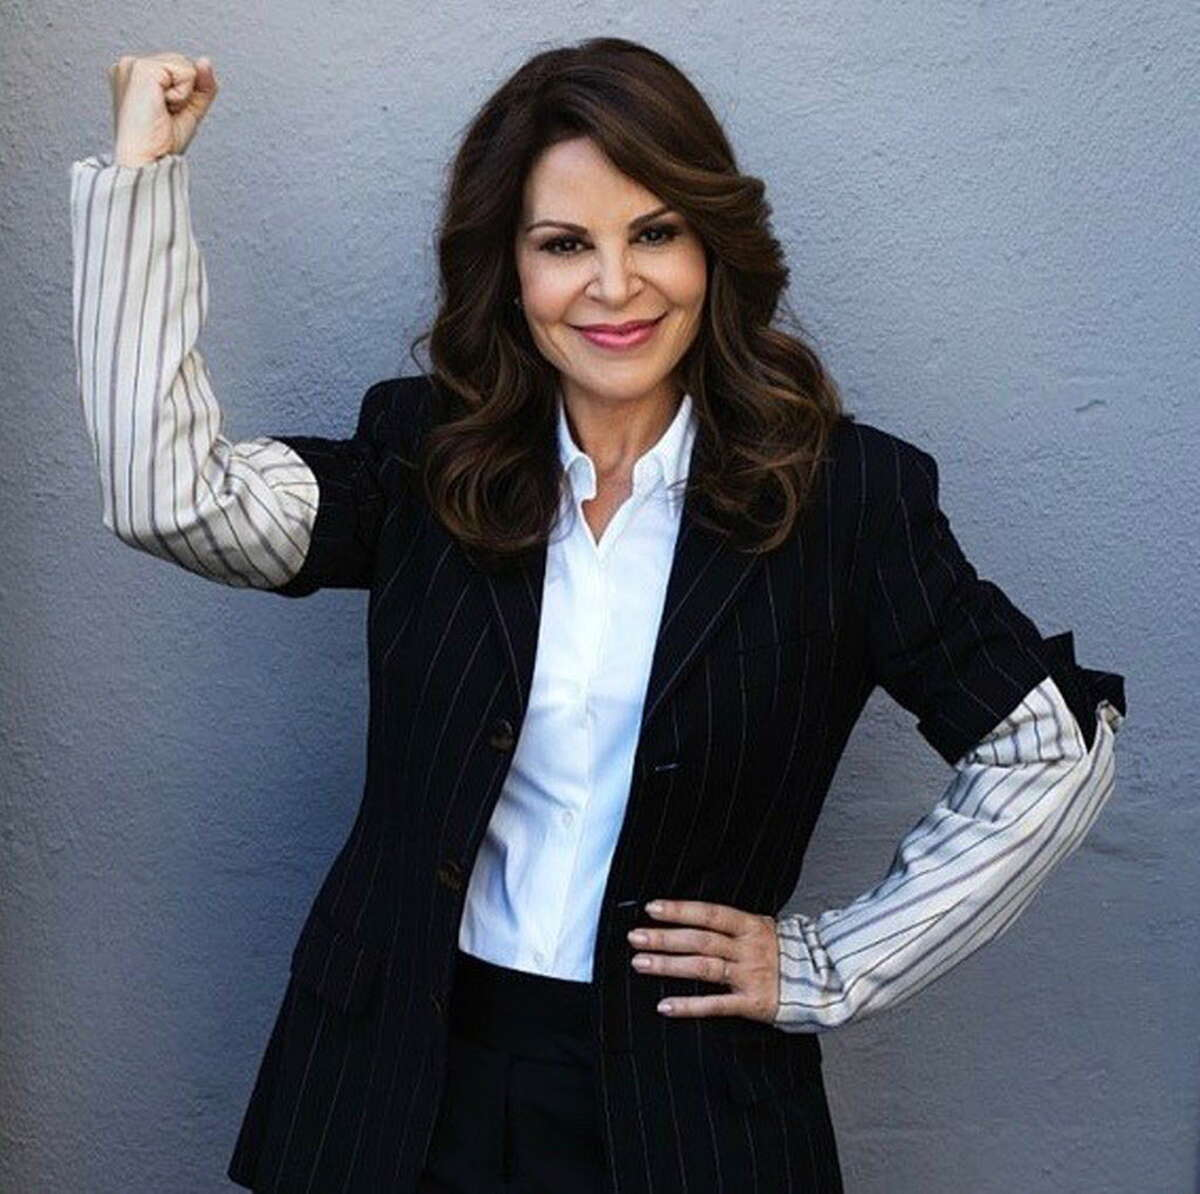 Latinabusinesswoman and nonprofit leader Nely Galán releases a new book,